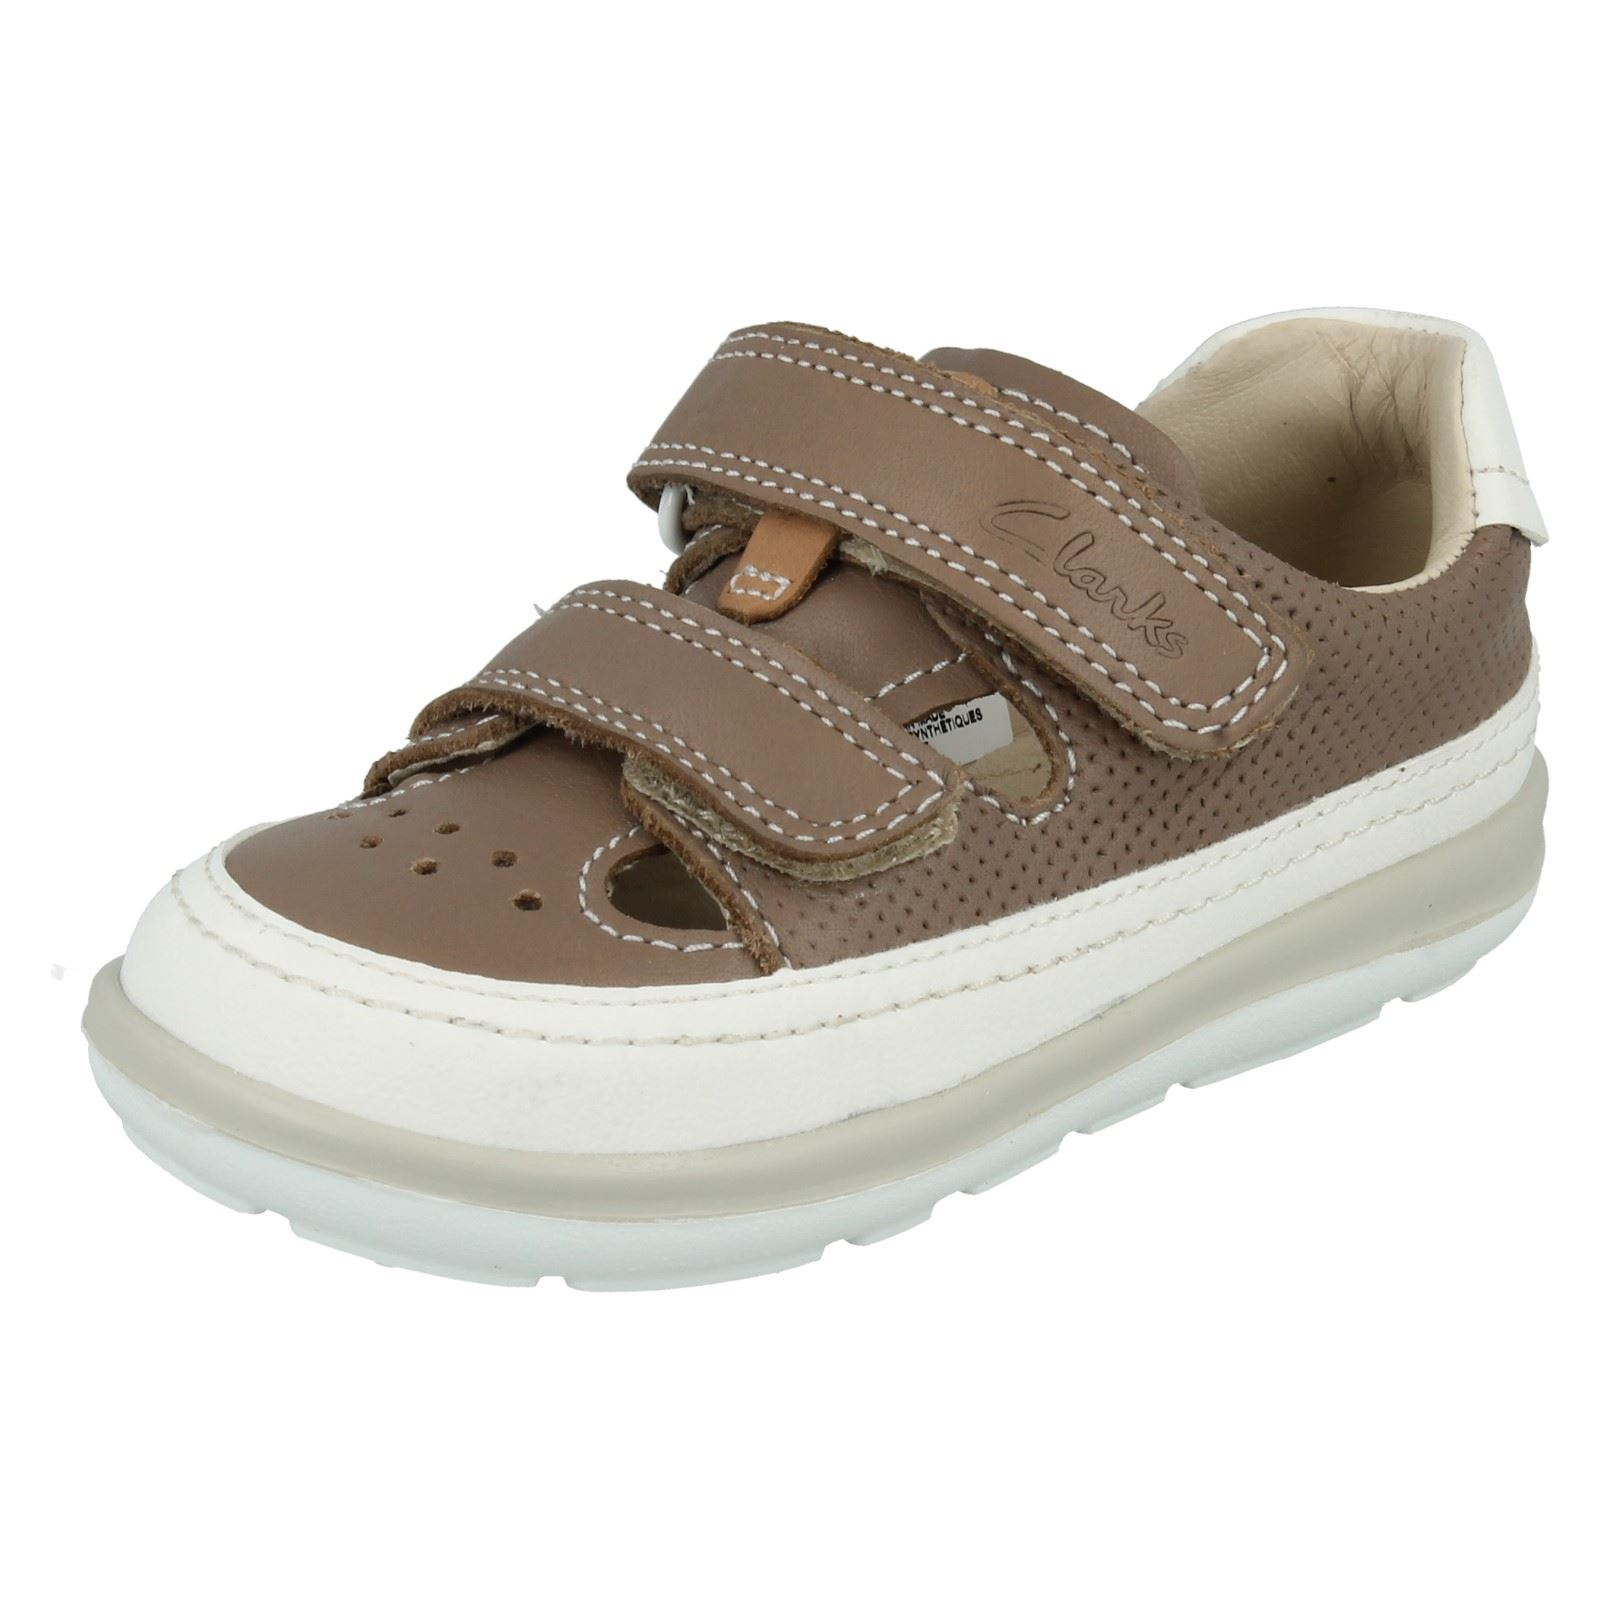 Boys Clarks First Shoes Style - Softly Boy